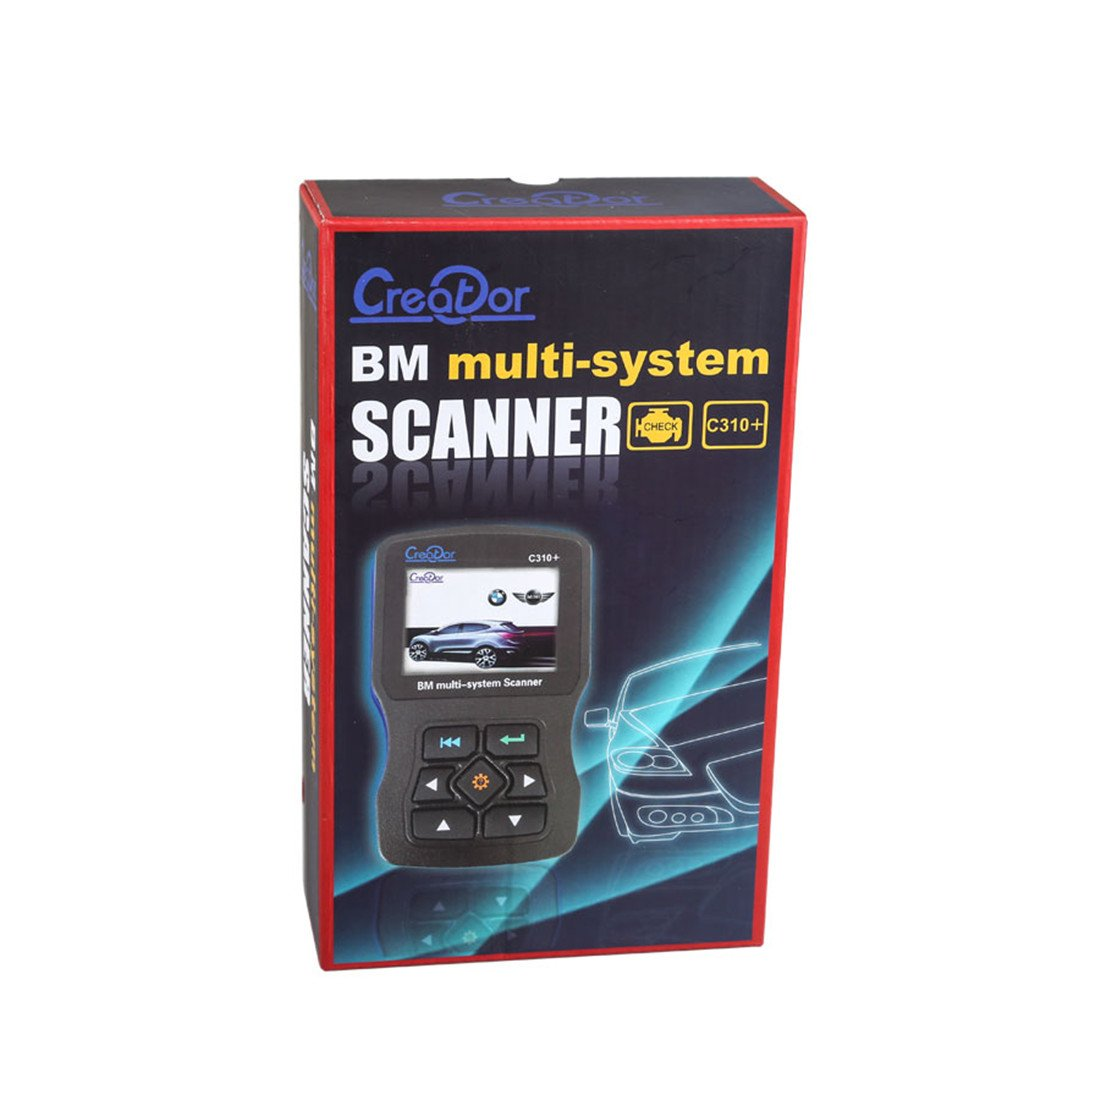 Creator V8.0 C310 Plus C310+ Code Scanner for BMW Mini Multi System Scan Tool by CREATOR (Image #4)